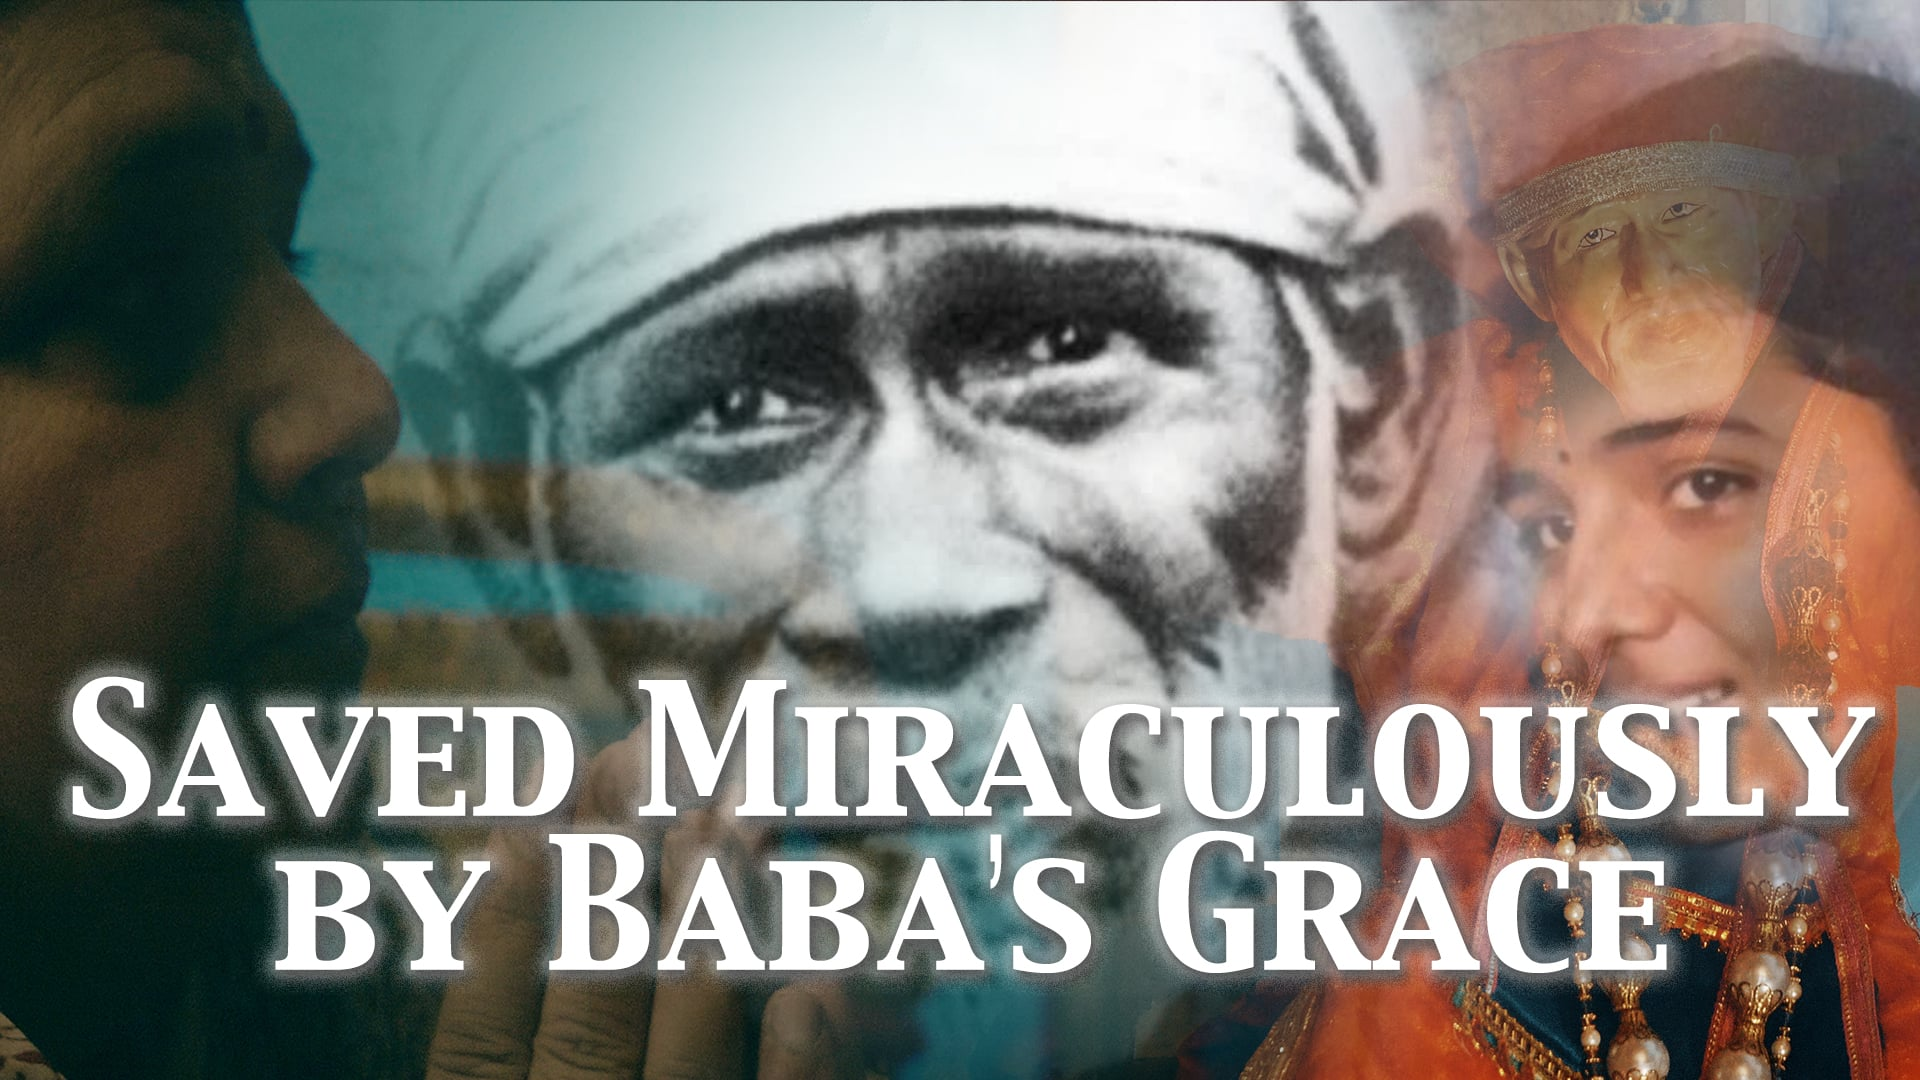 Saved miraculously by Baba's grace